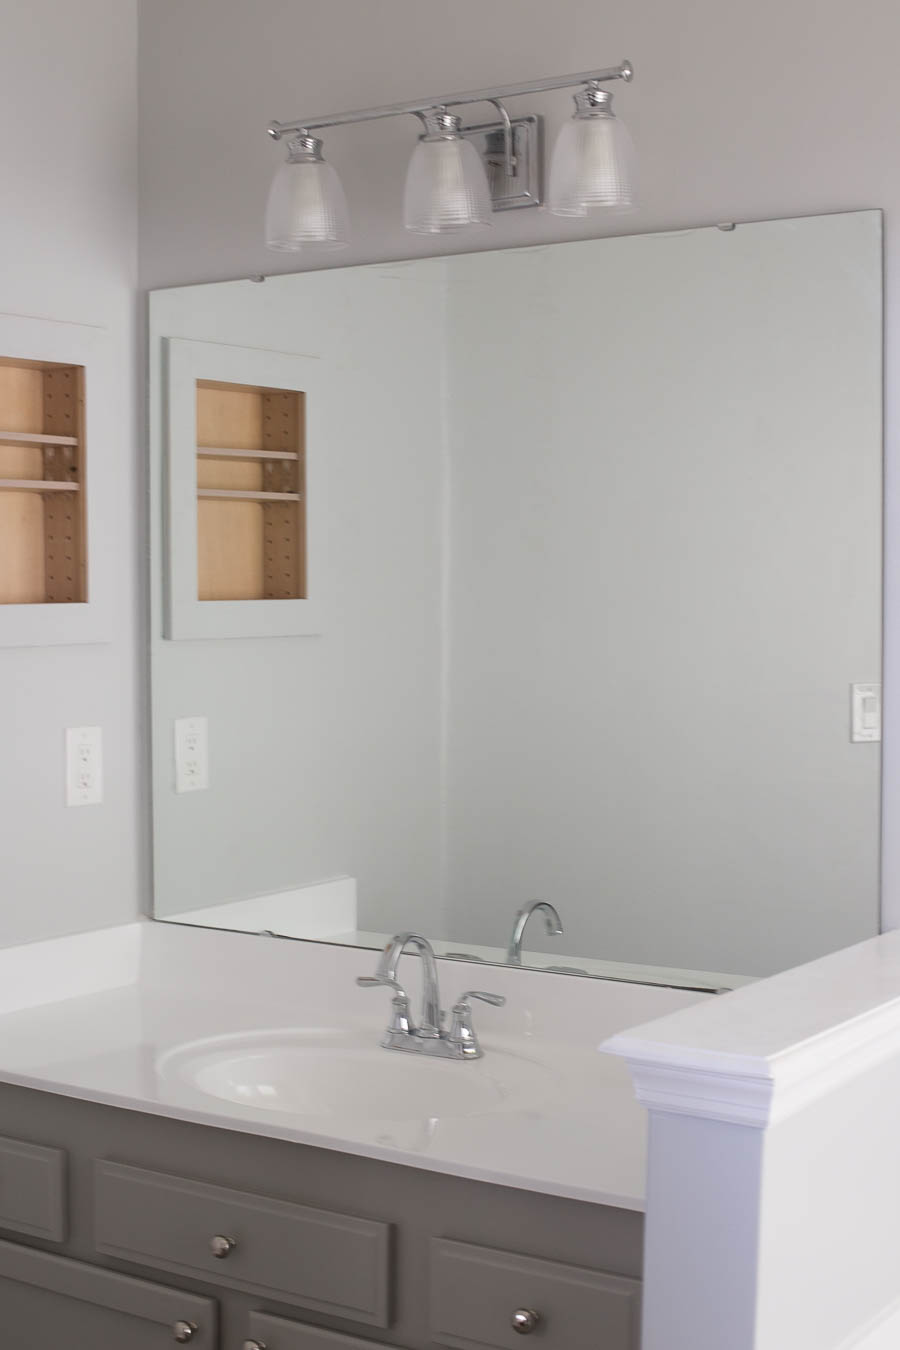 Beau How To Frame A Bathroom Mirror In An Afternoon For Less Than $40!